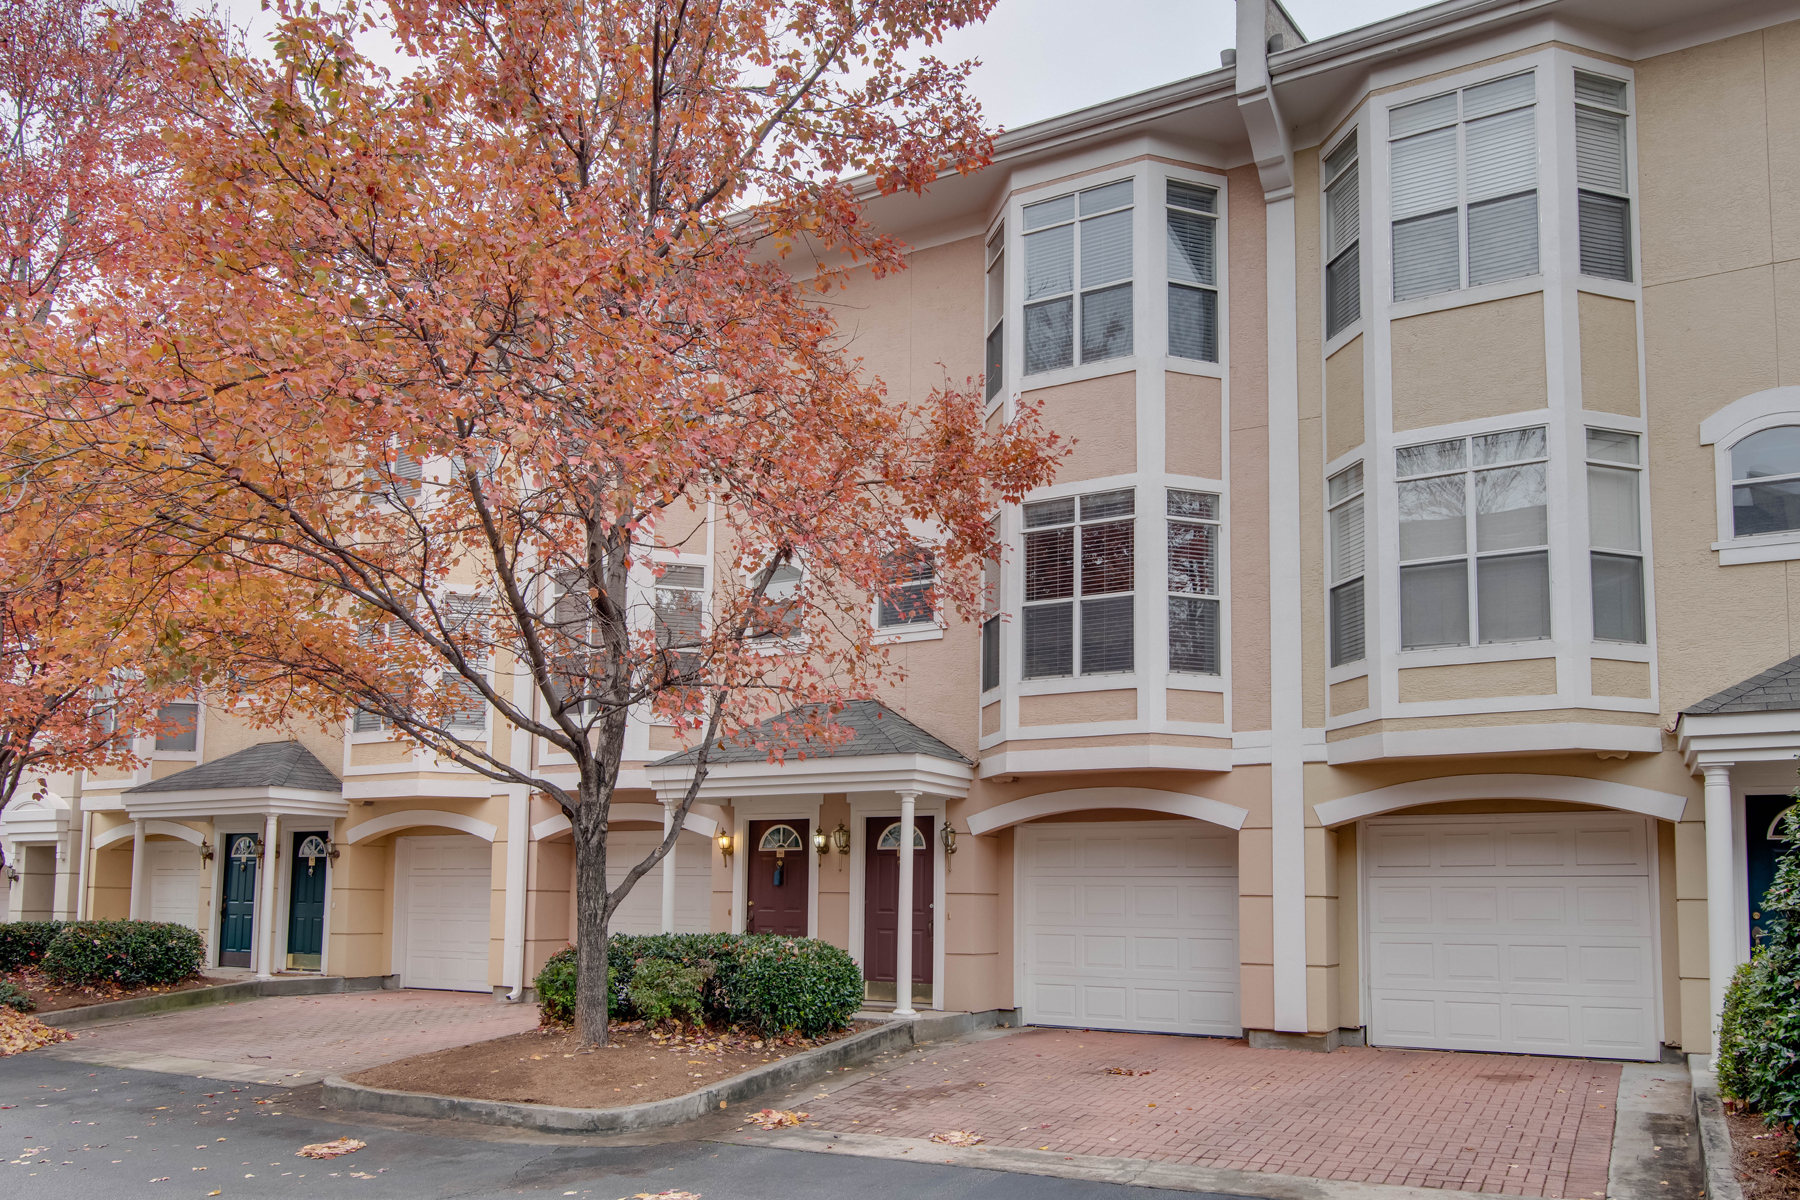 Townhouse for Sale at Three-Level Tomehome 375 Highland Ave 915 Atlanta, Georgia 30312 United States